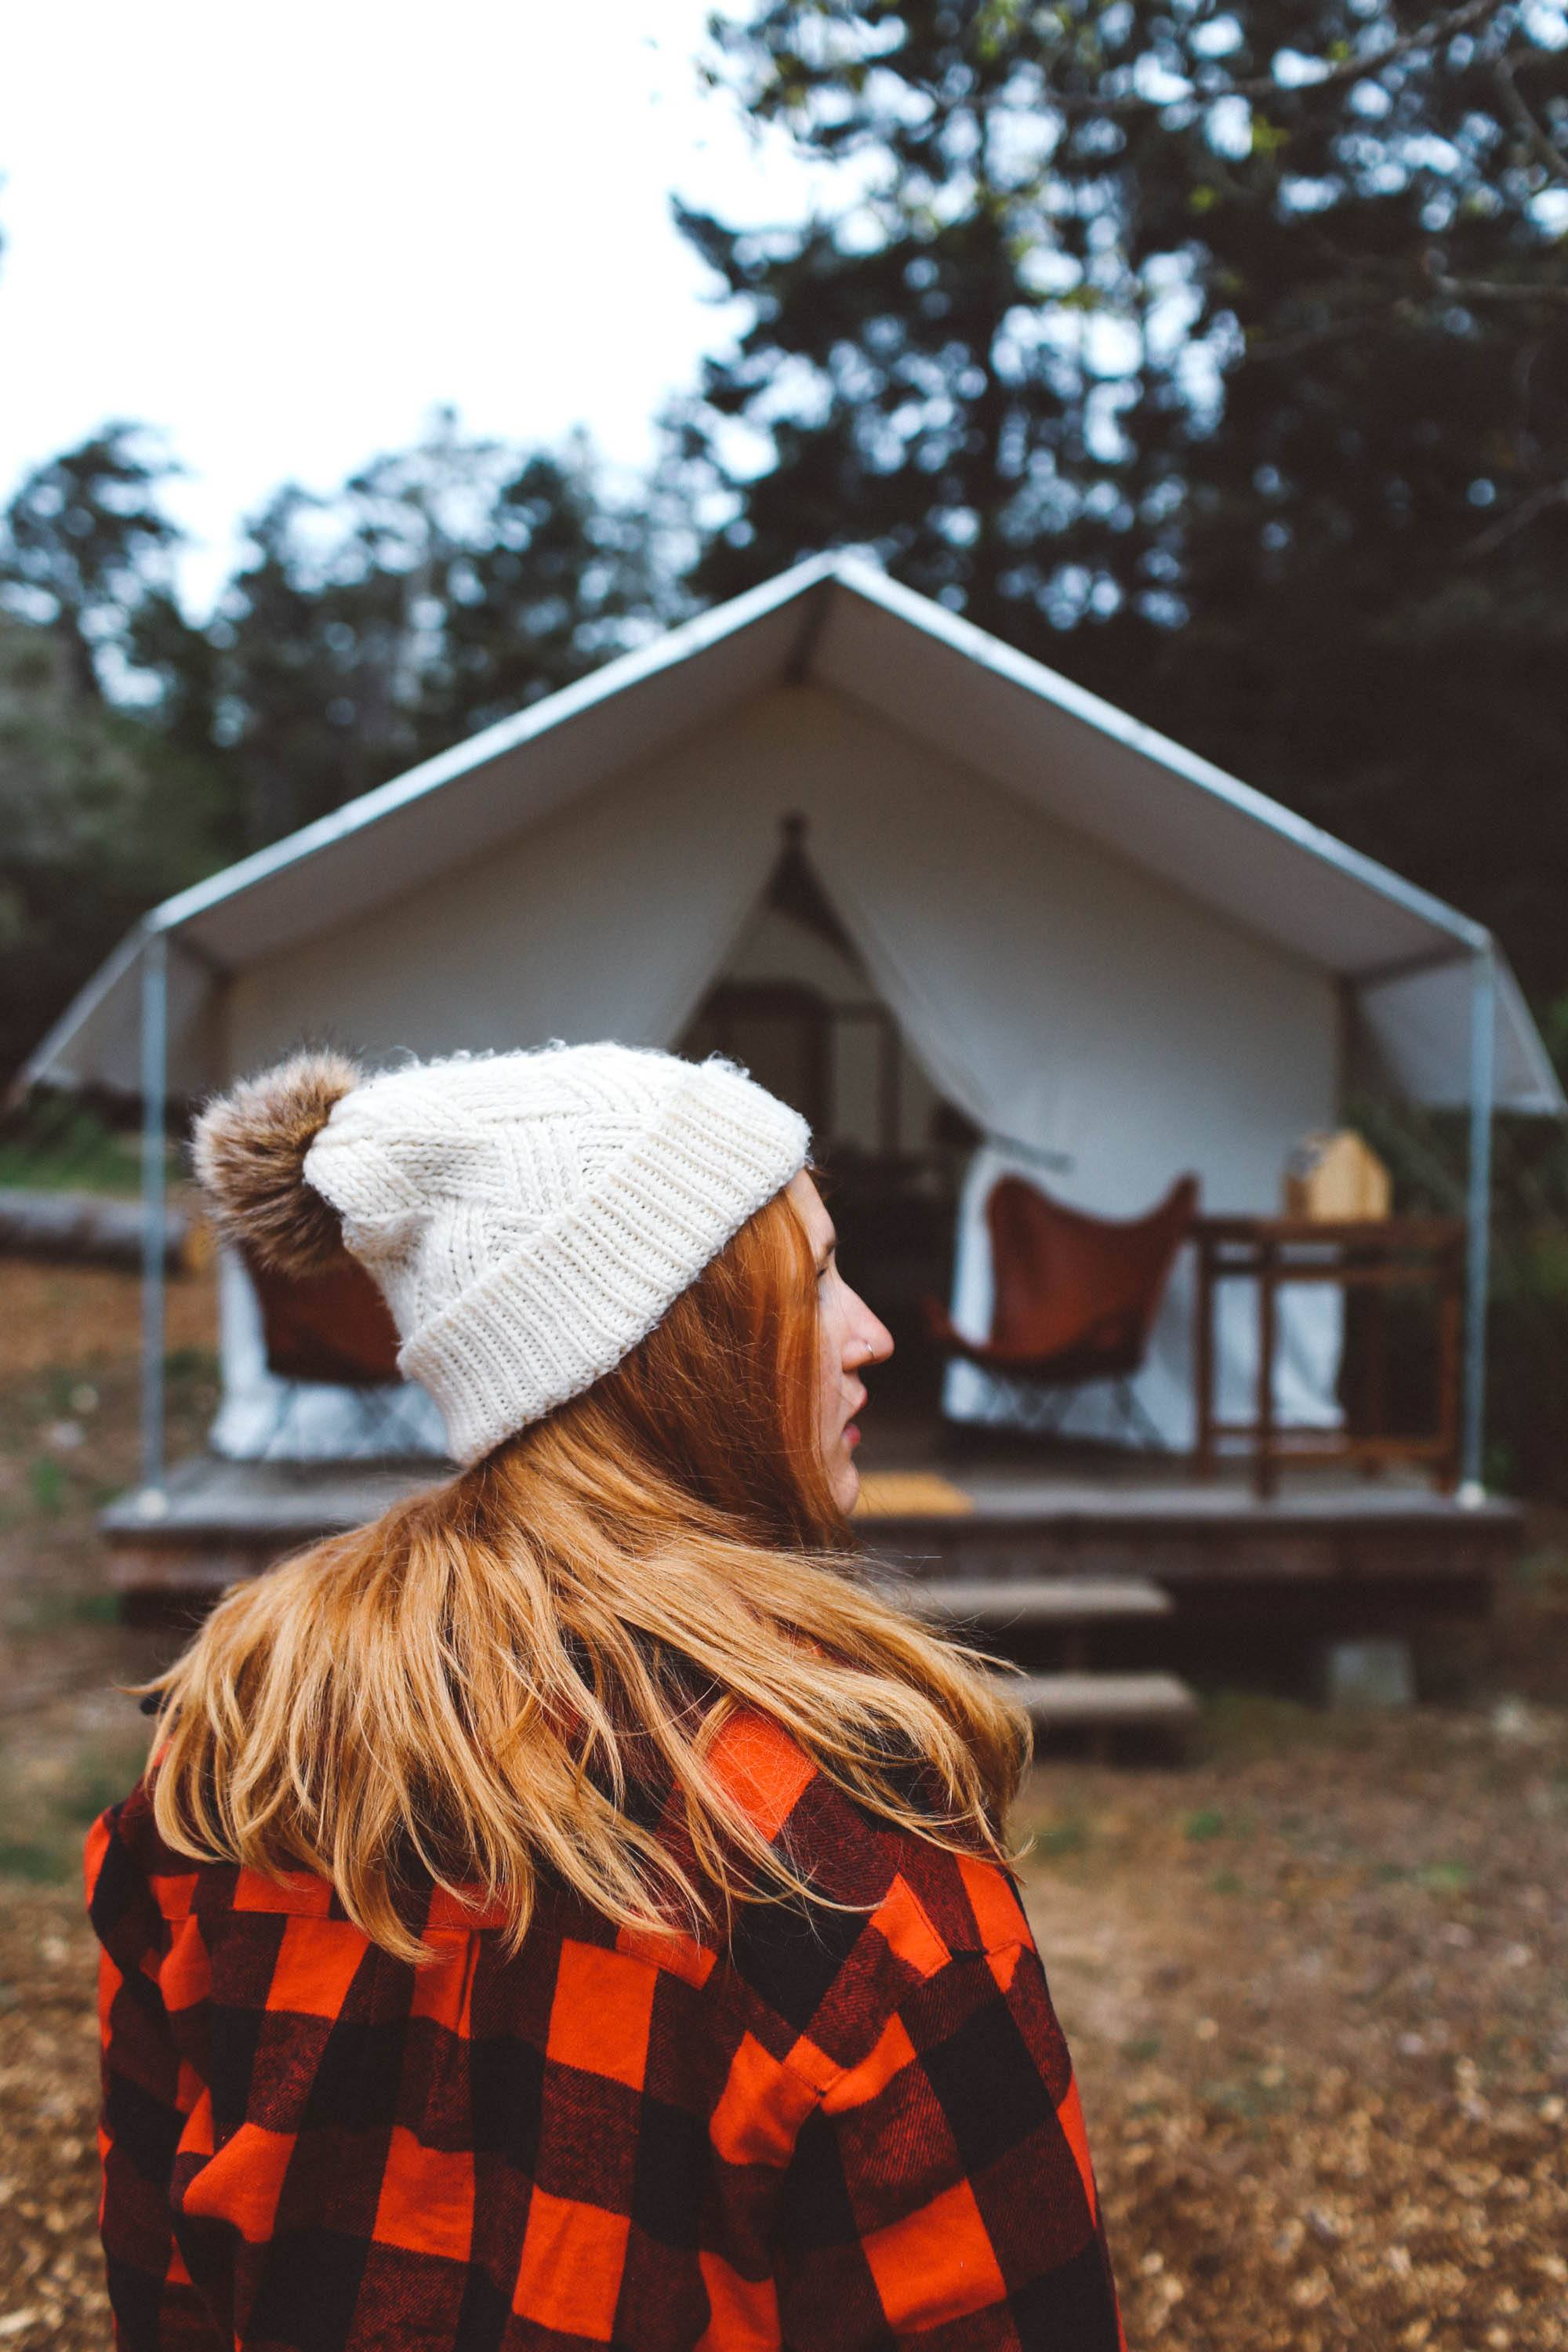 Woman wearing a plaid shirt and white puff beanie in front of tent